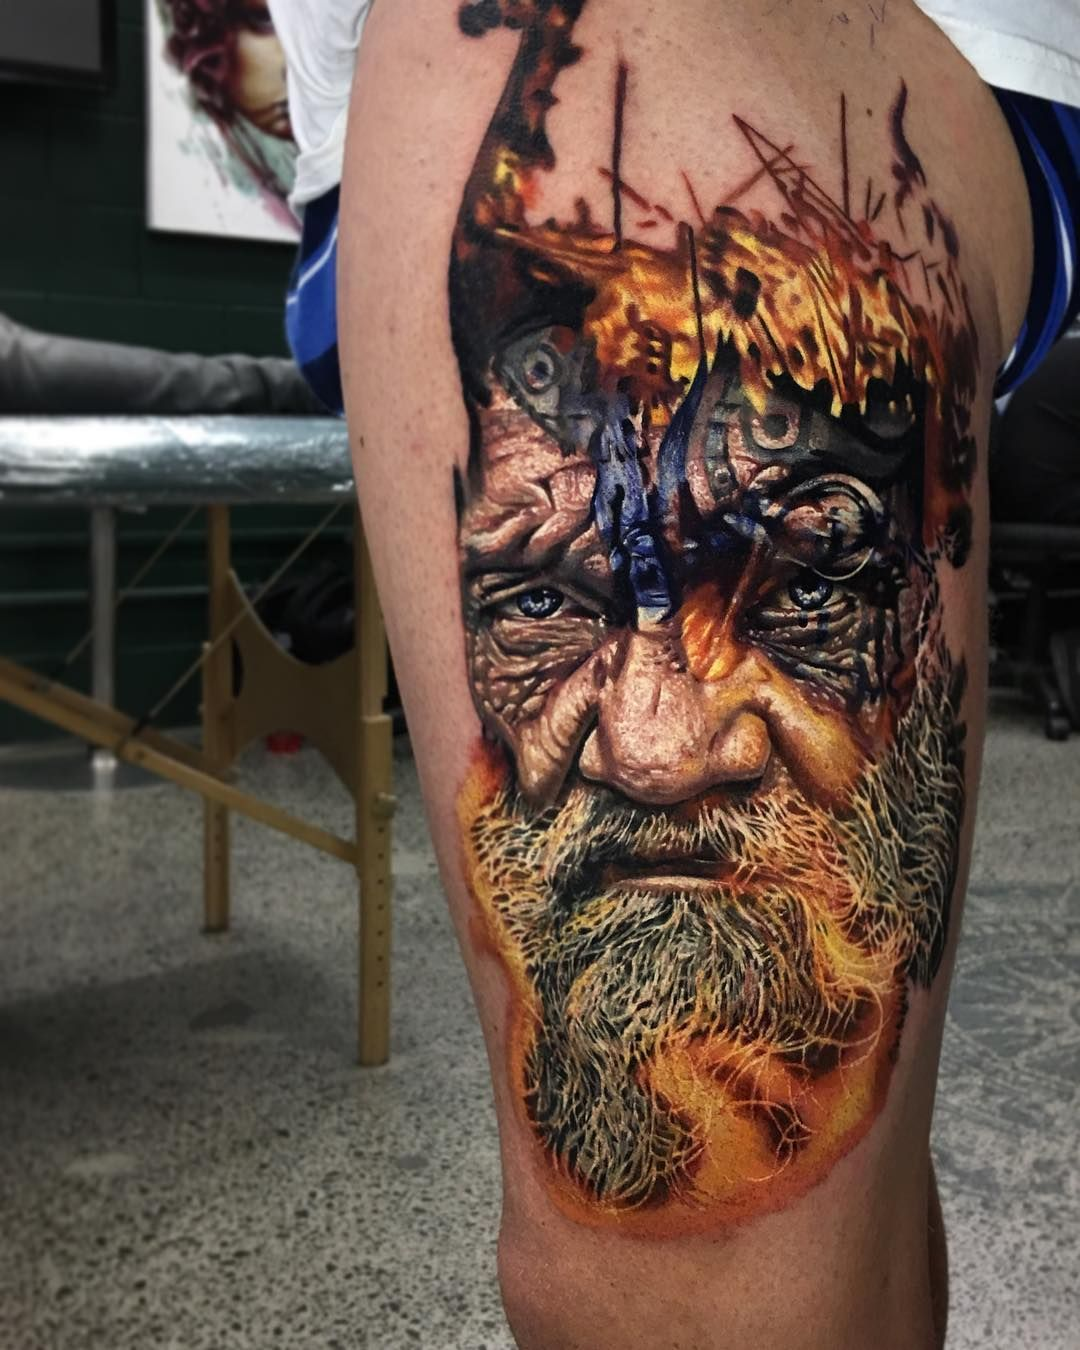 Perfect Color Tattoo Of Viking Piece Motive Done By Tattoo Artist Ben Kaye From Orewa New Zealand Viking Tattoos Incredible Tattoos Tattoos